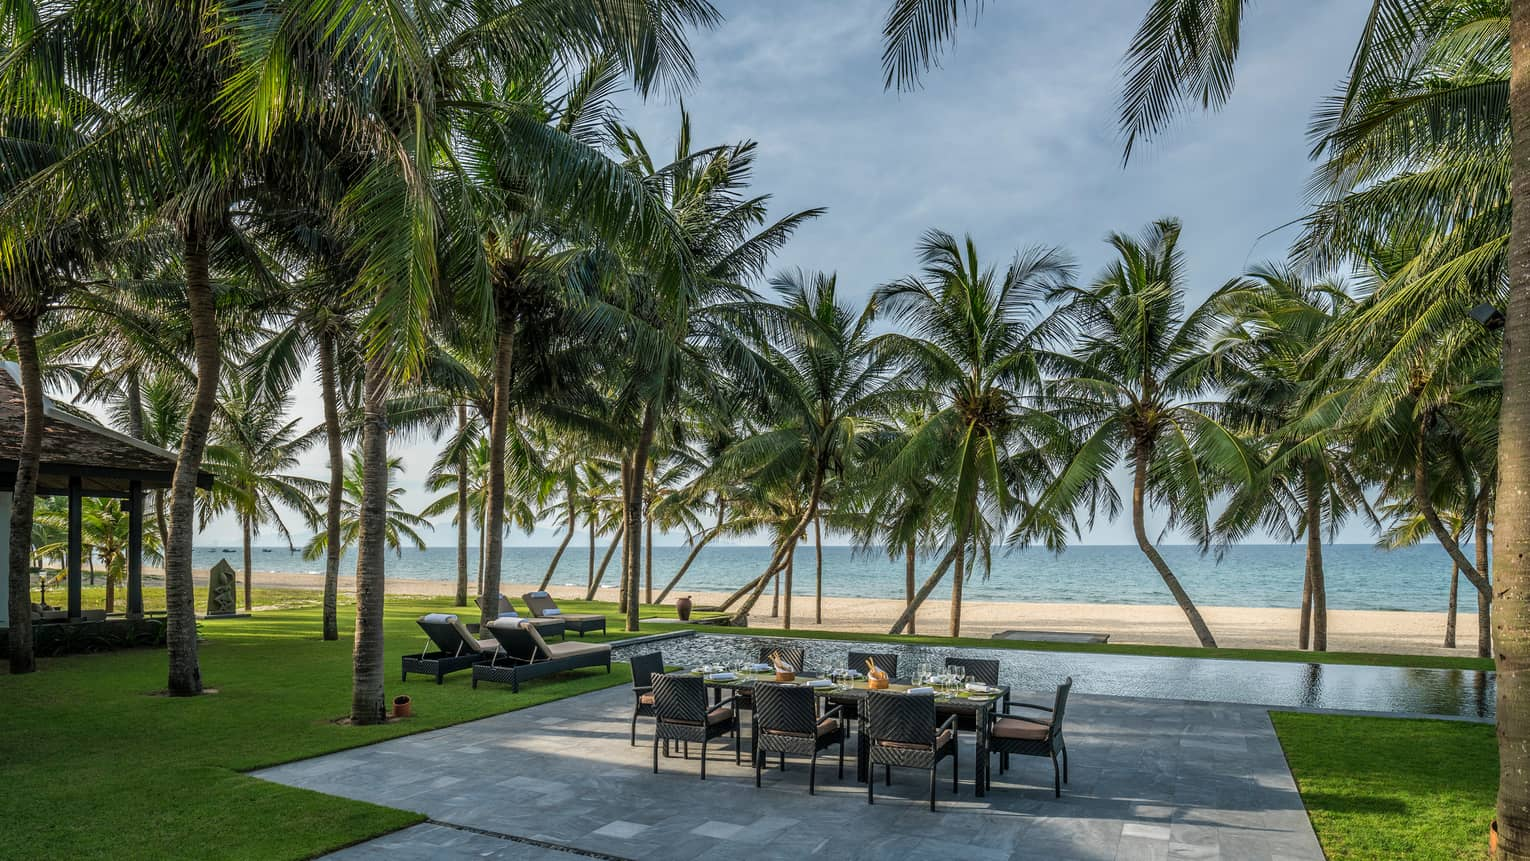 Beachfront Villa large stone patio with private dining table, lounge chairs under palms